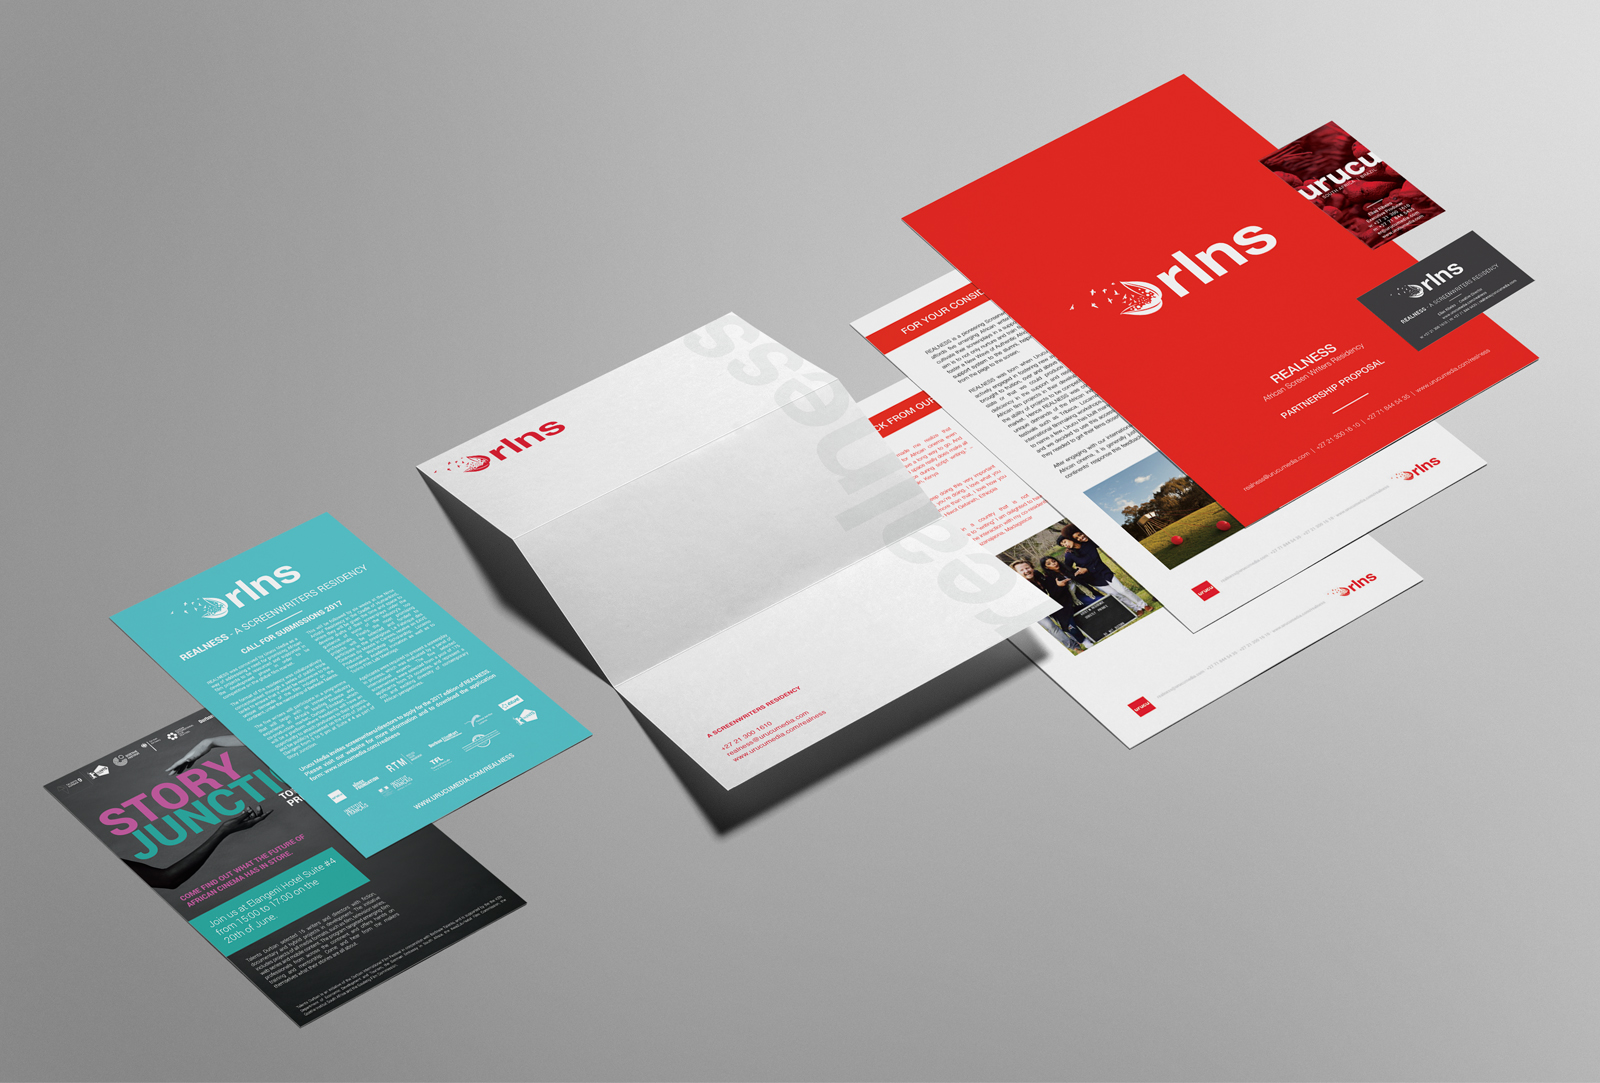 Uric Media - Stationery, Document Setting, Flyers, Letterhead and Business Cards